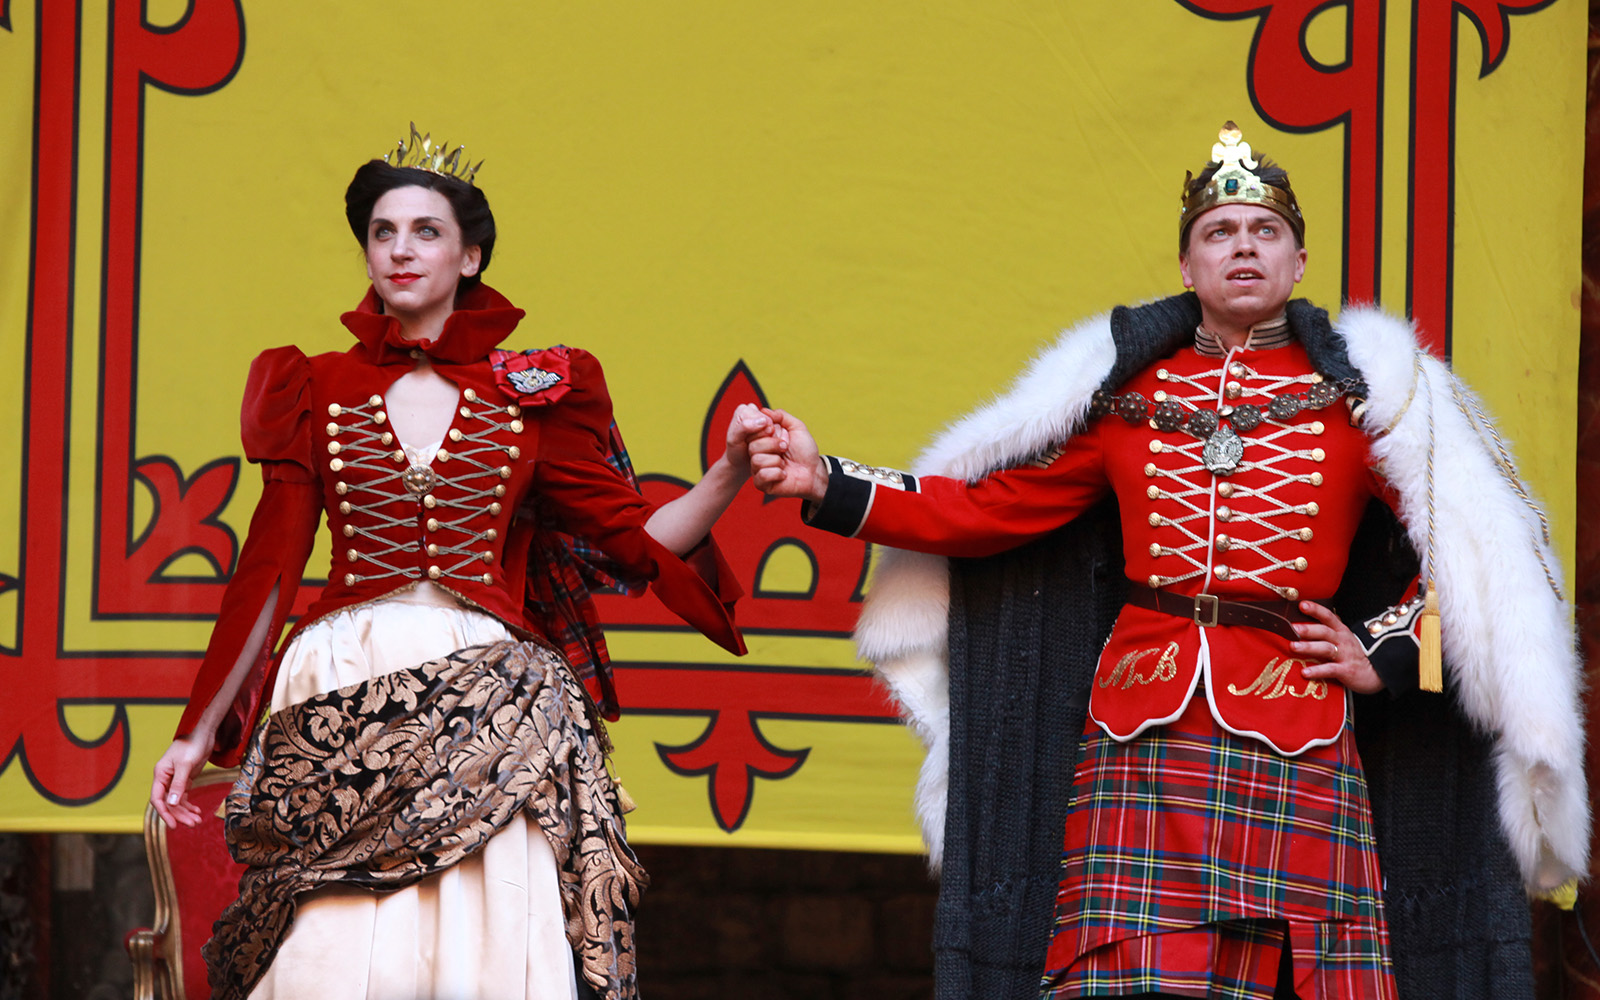 Macbeth and Lady Macbeth dressed in royal garments hold hands